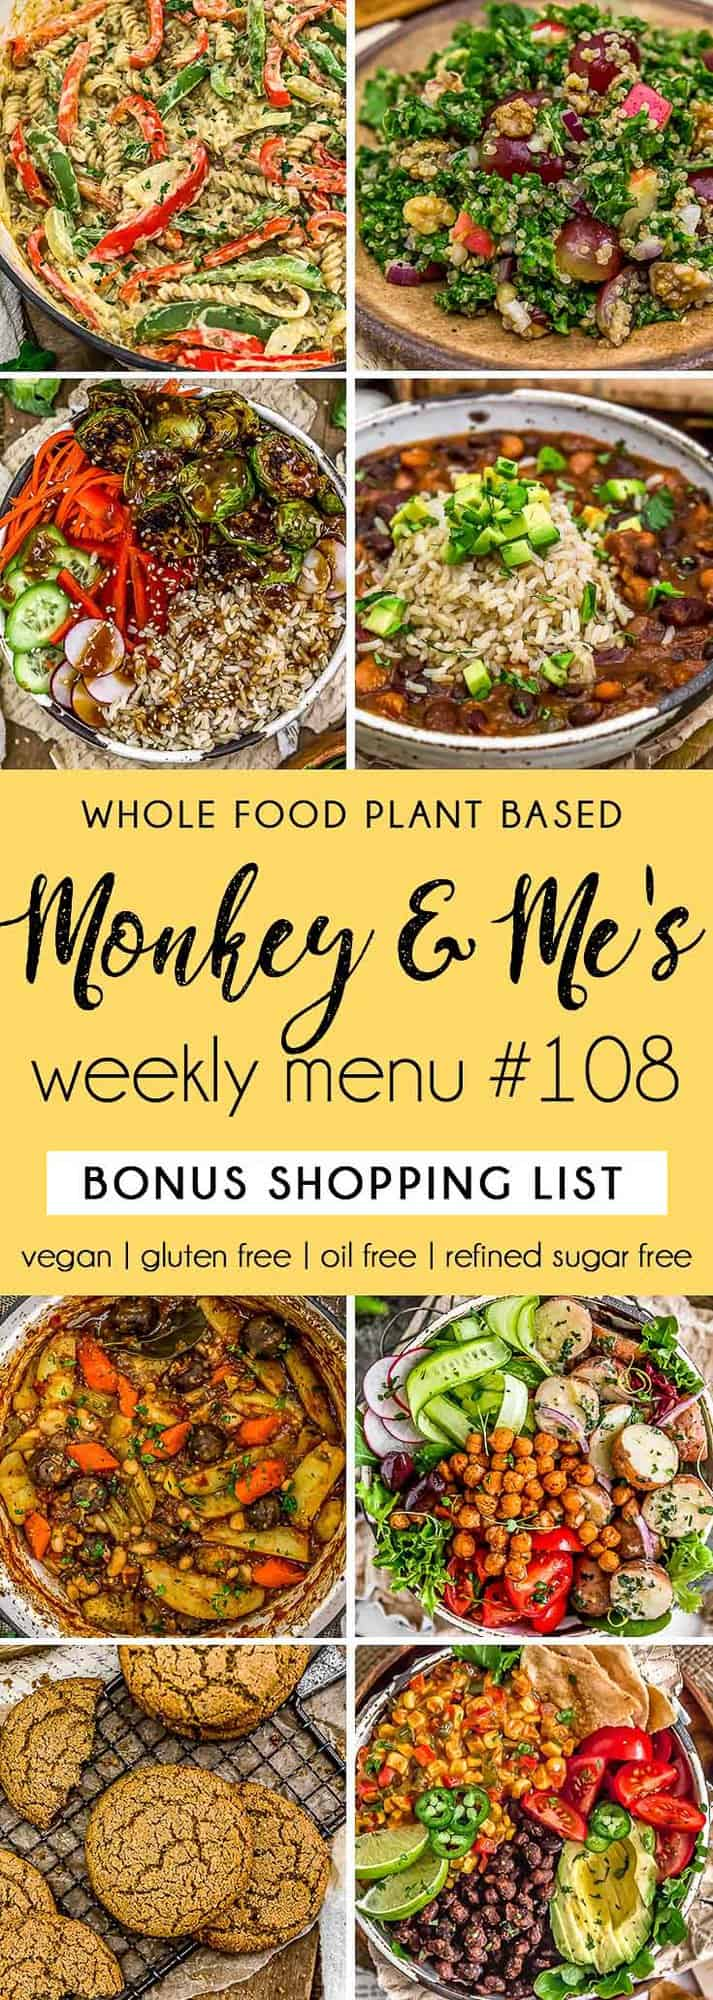 Monkey and Me's Menu 108 featuring 8 recipes